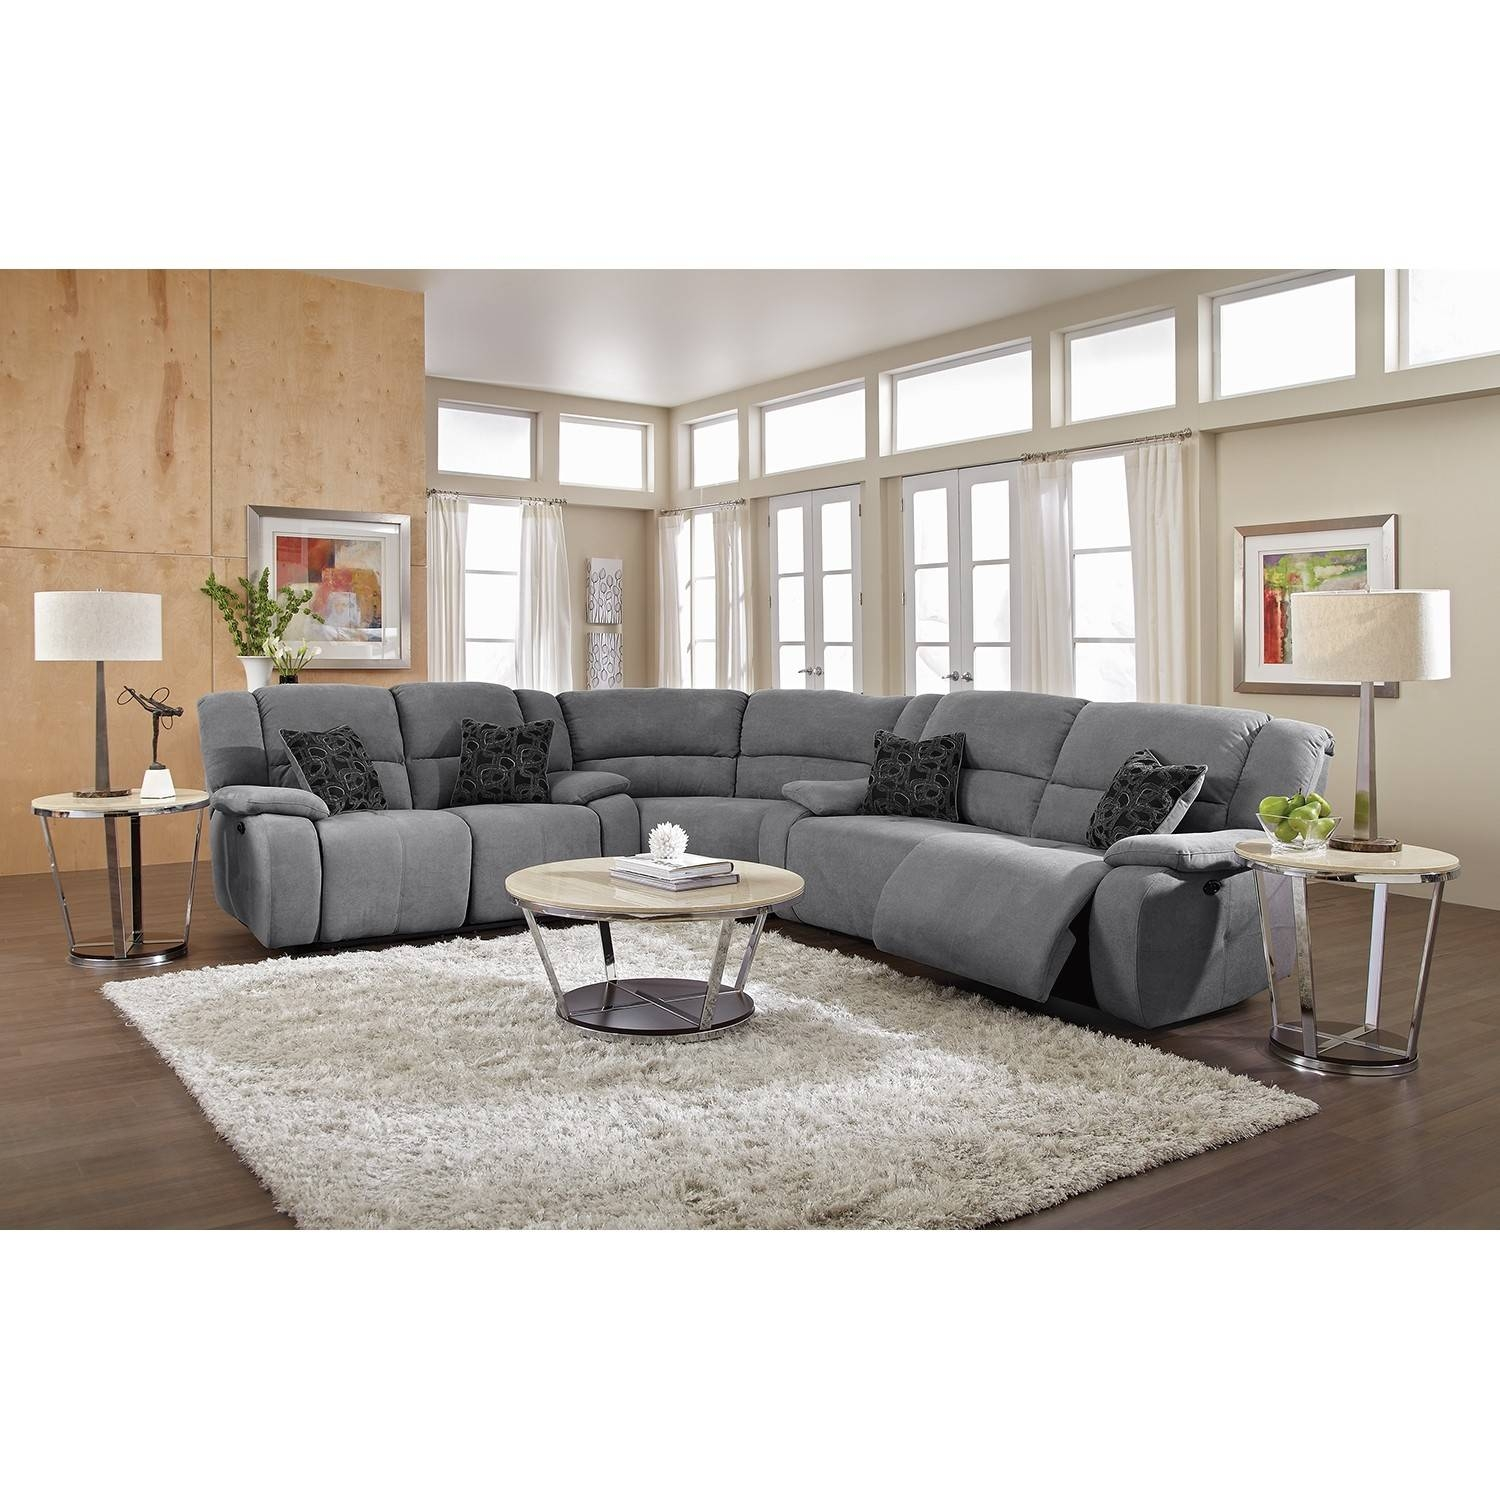 Living Room: Amazing Winsome Curved Sectional For Beautiful Living inside Curved Recliner Sofa (Image 19 of 30)